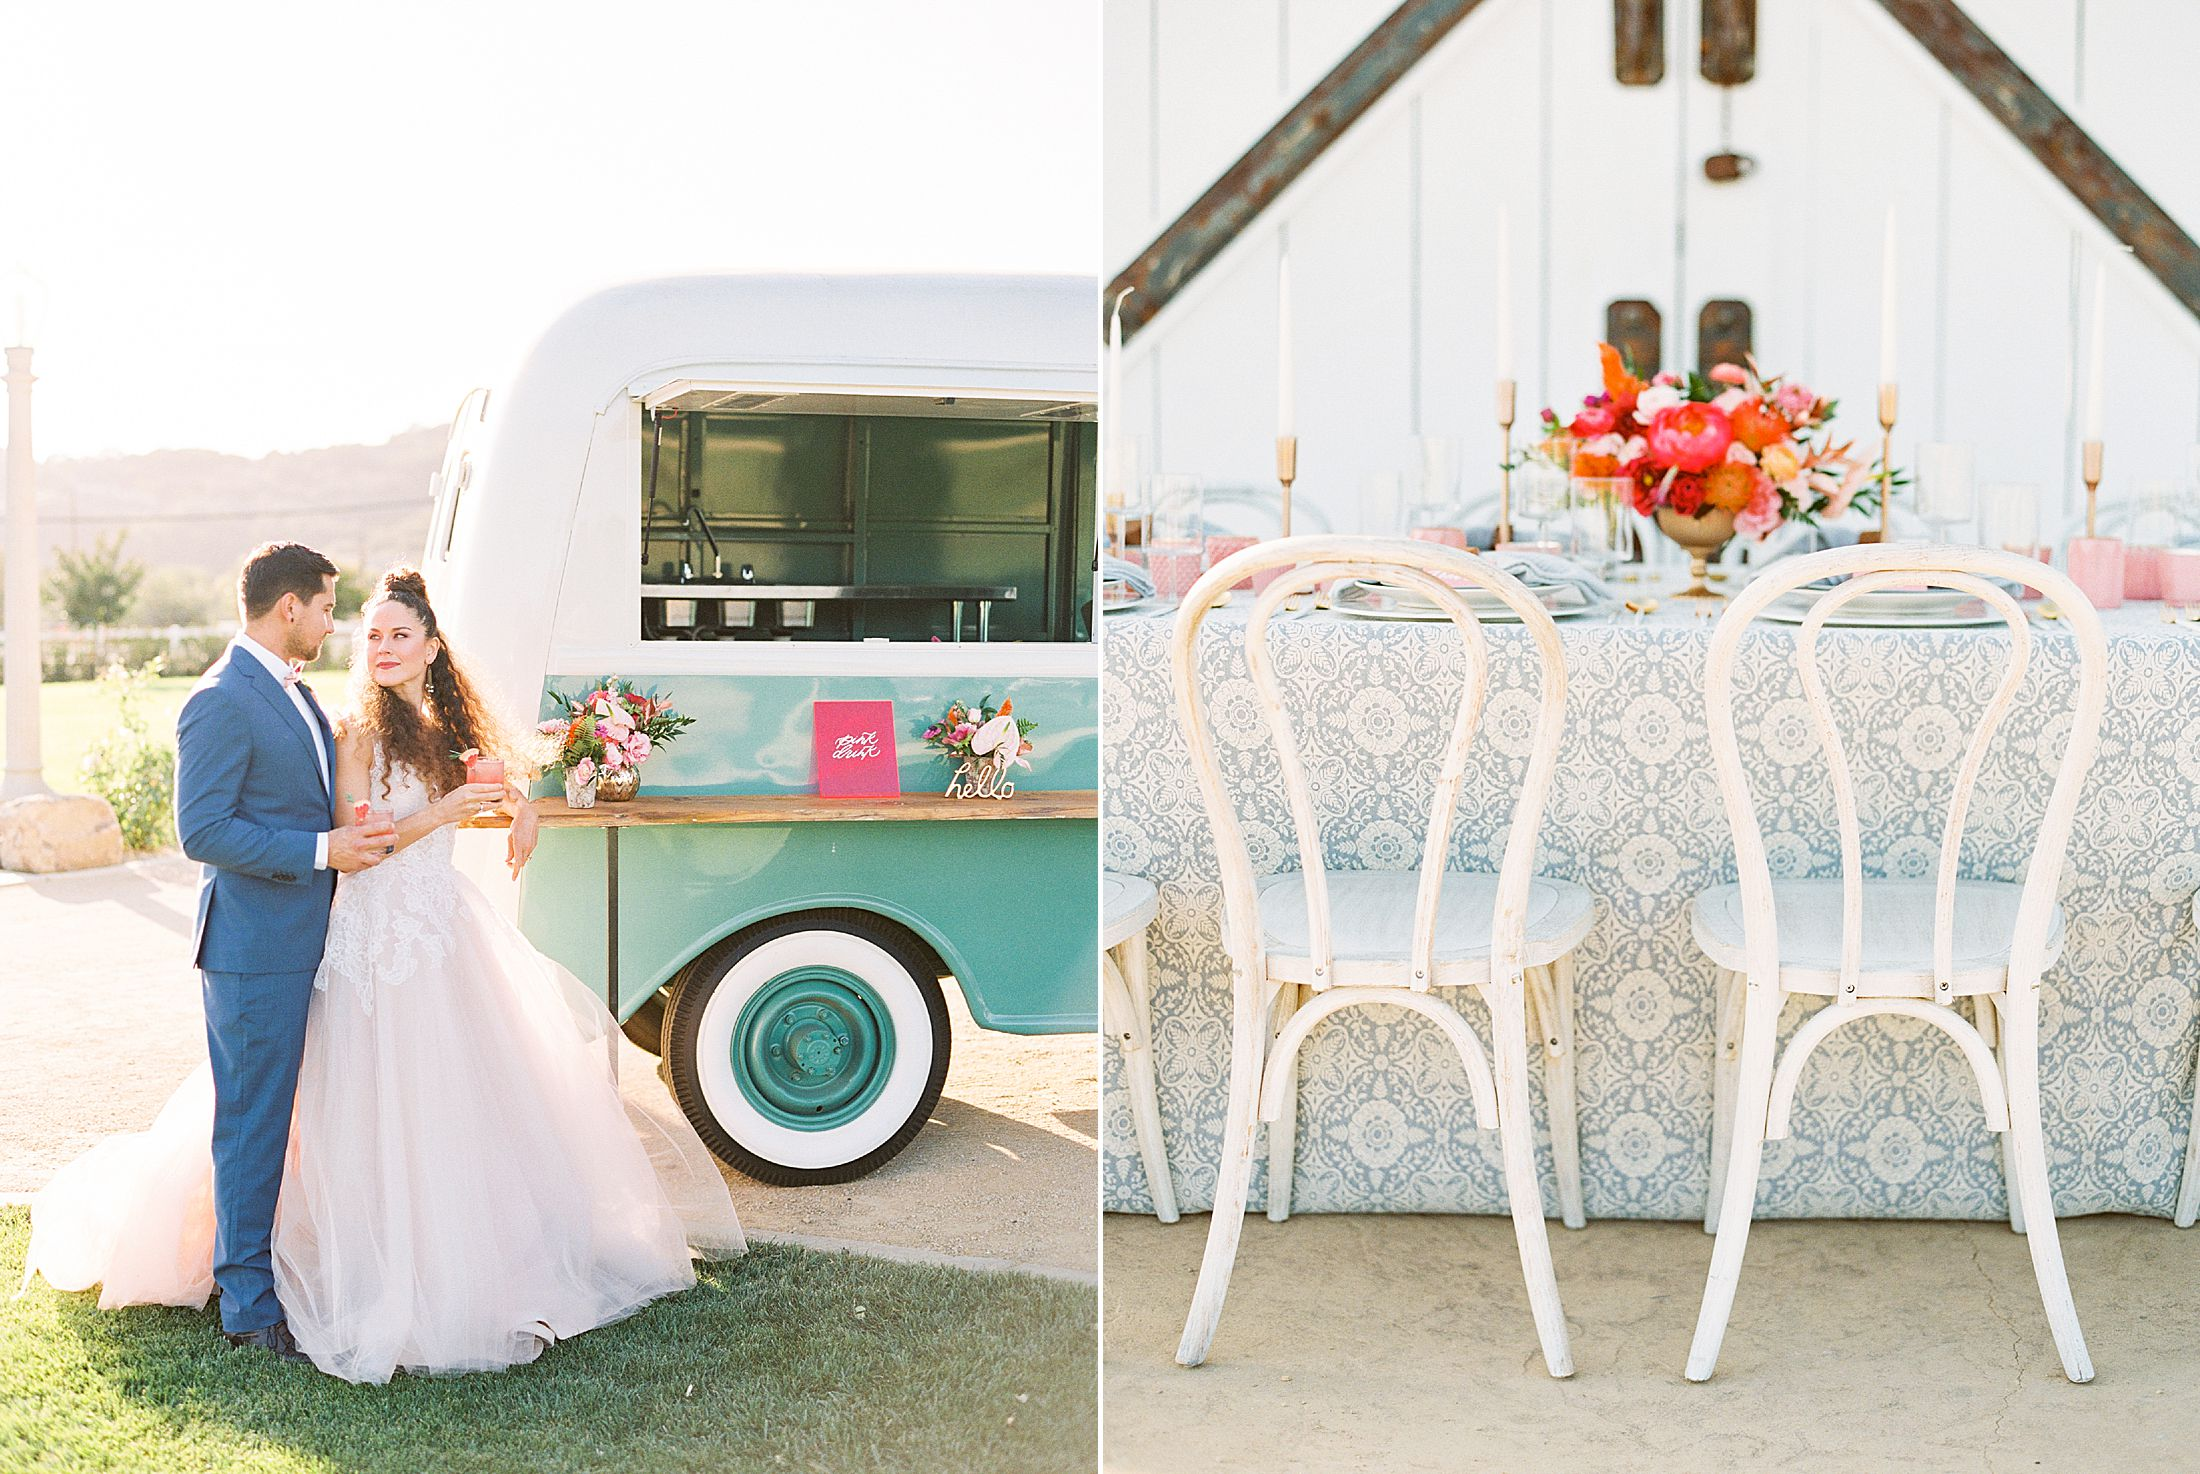 White Barn Edna Valley Wedding Inspiration - San Luis Obispo Wedding - Featured on Green Wedding Shoes - Ashley Baumgartner - FM Events SLO - SLO Wedding Photographer_0003.jpg